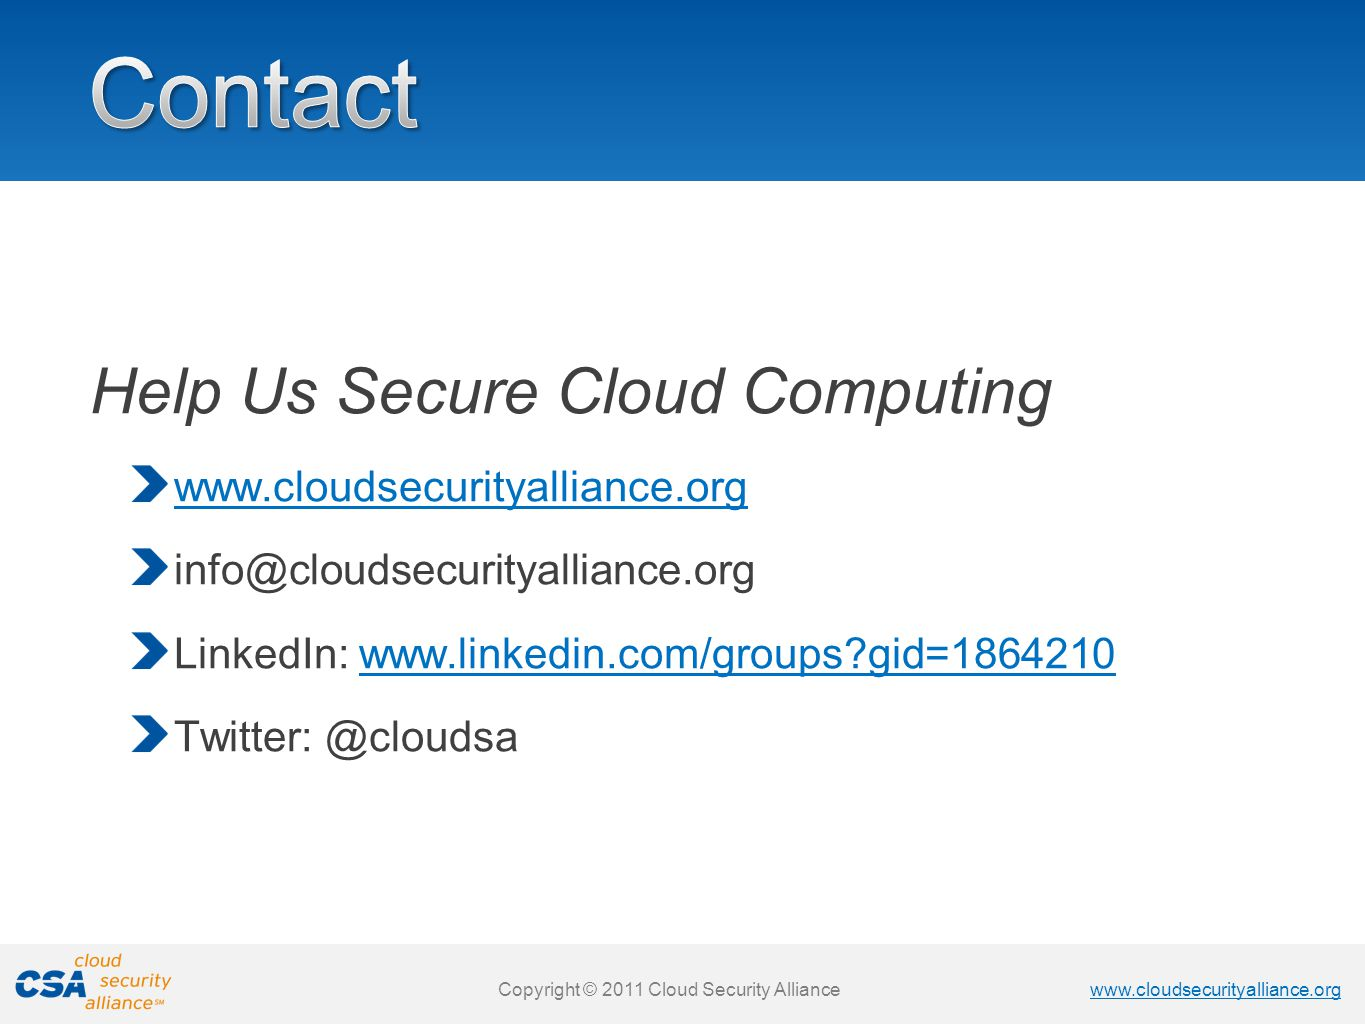 Contact Help Us Secure Cloud Computing www.cloudsecurityalliance.org